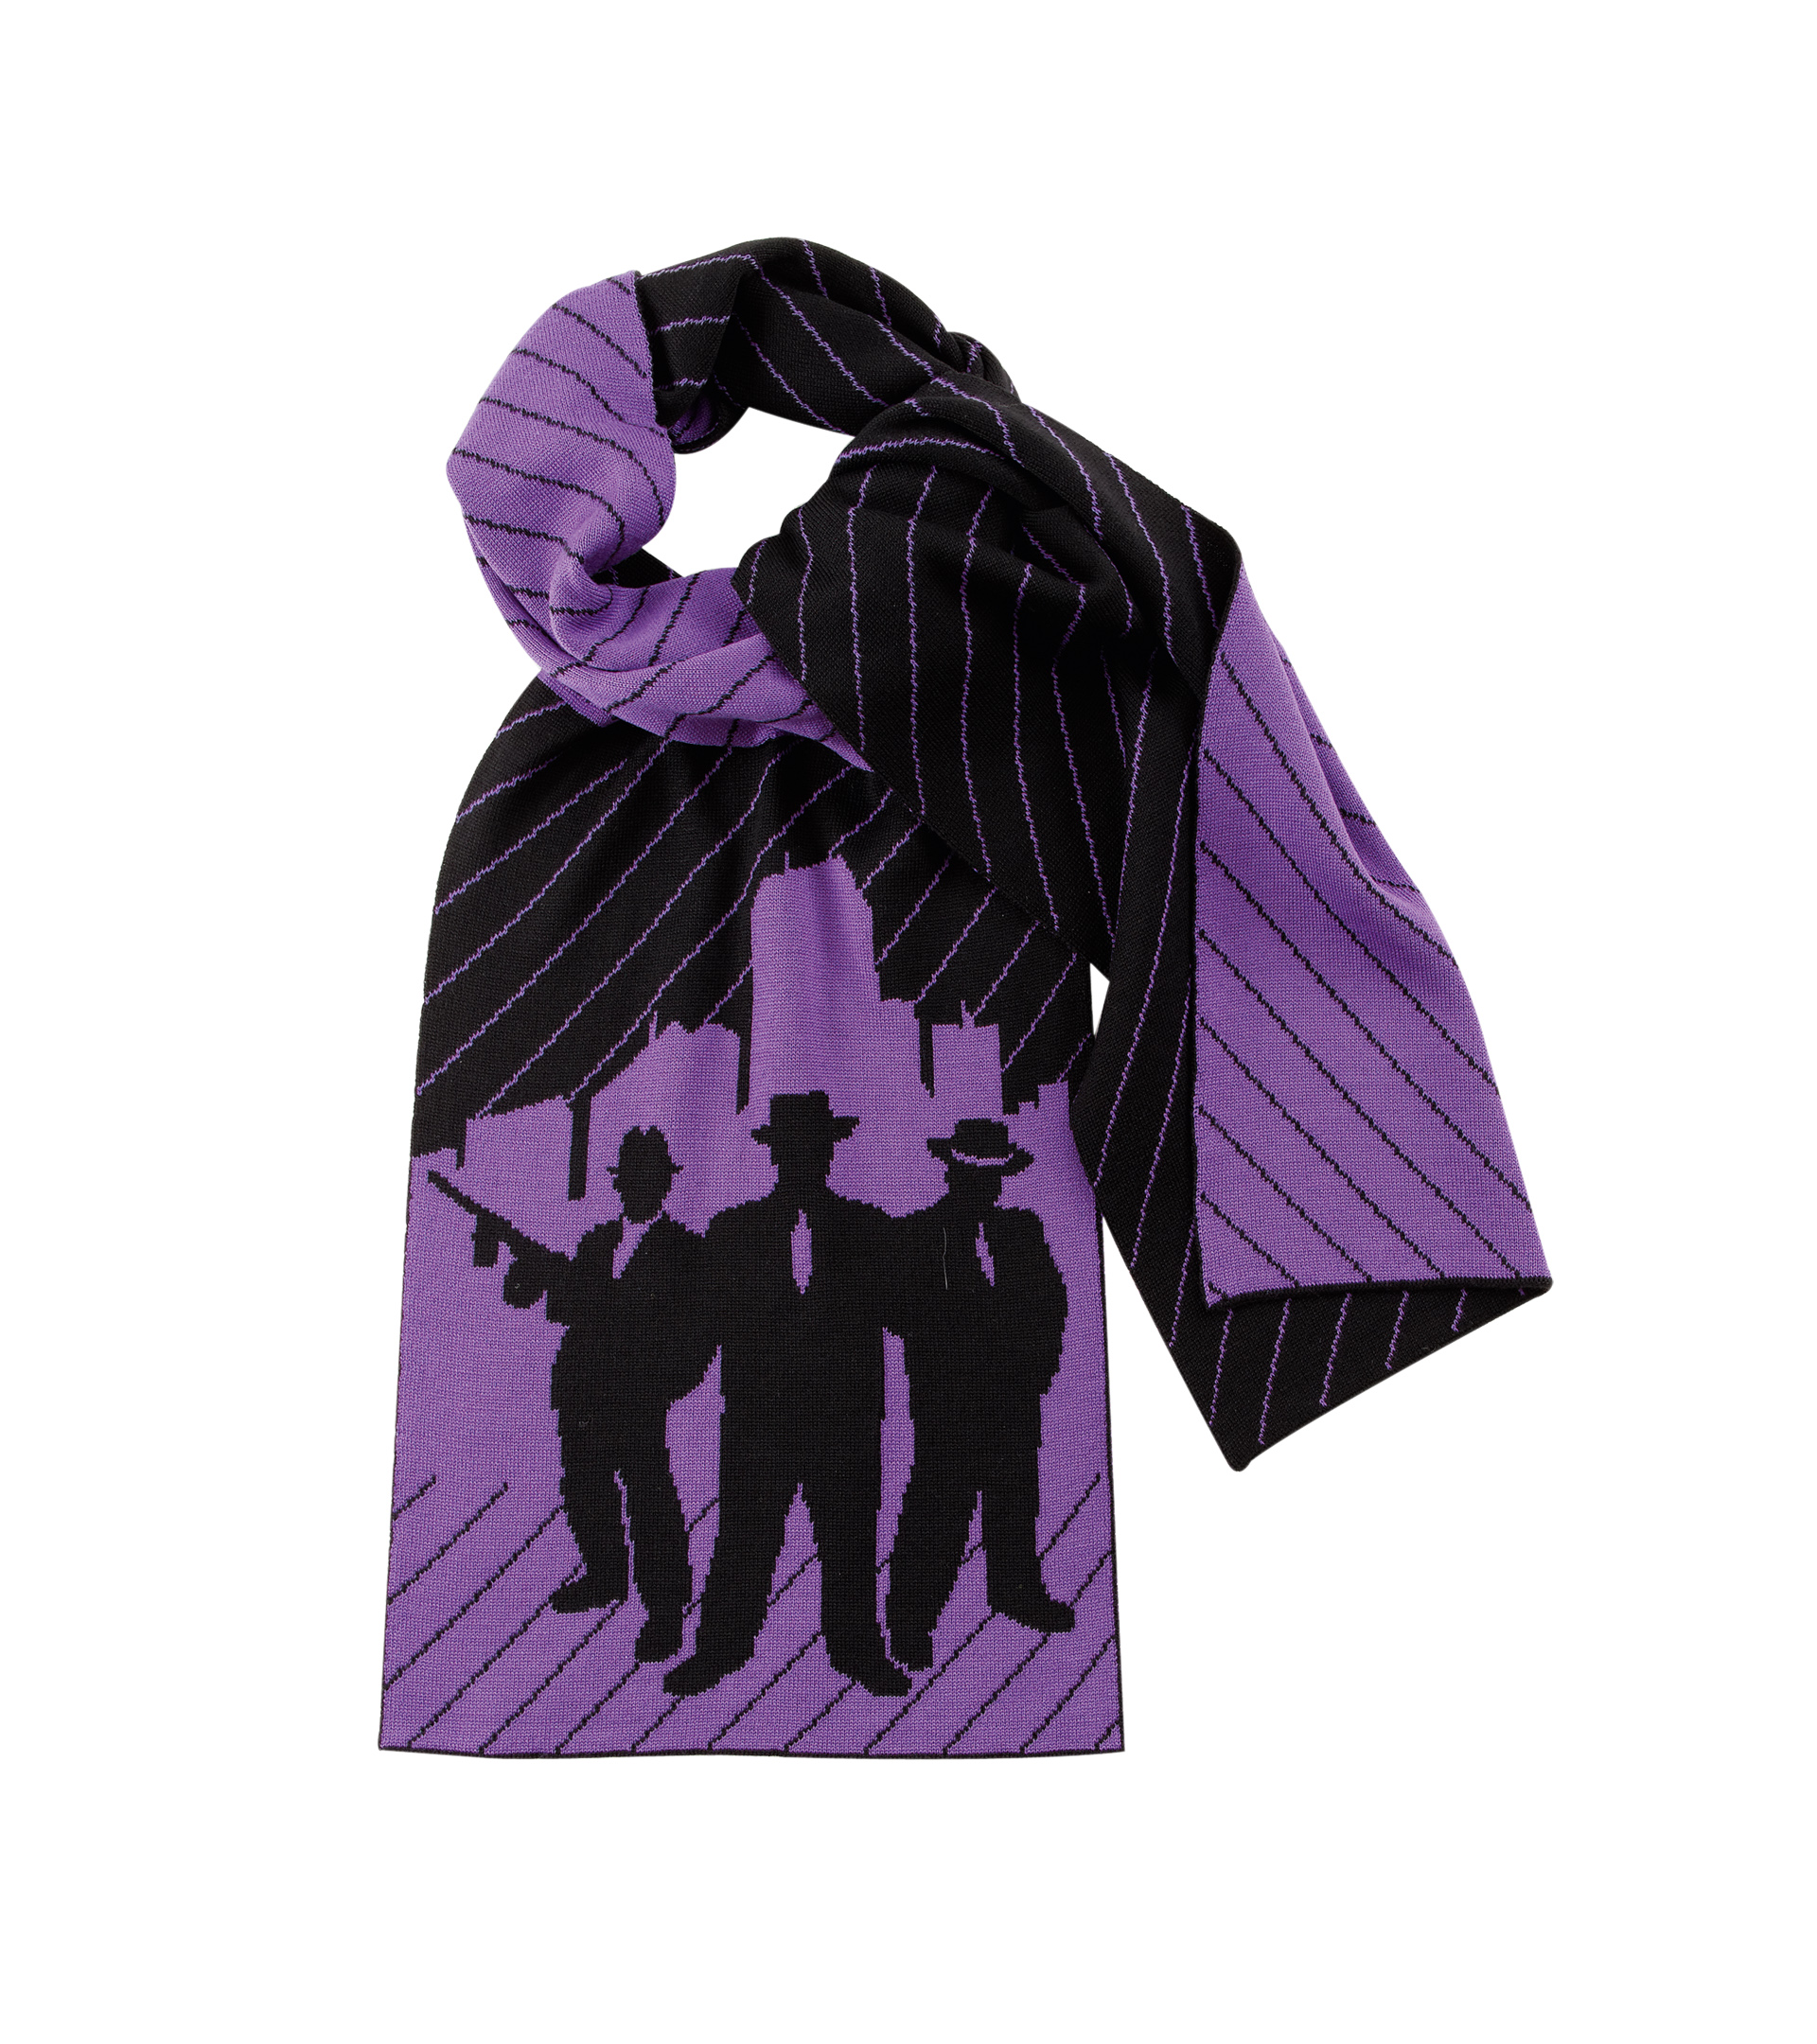 Uppercase Chicago Outfit Pirate Black Magic Purple